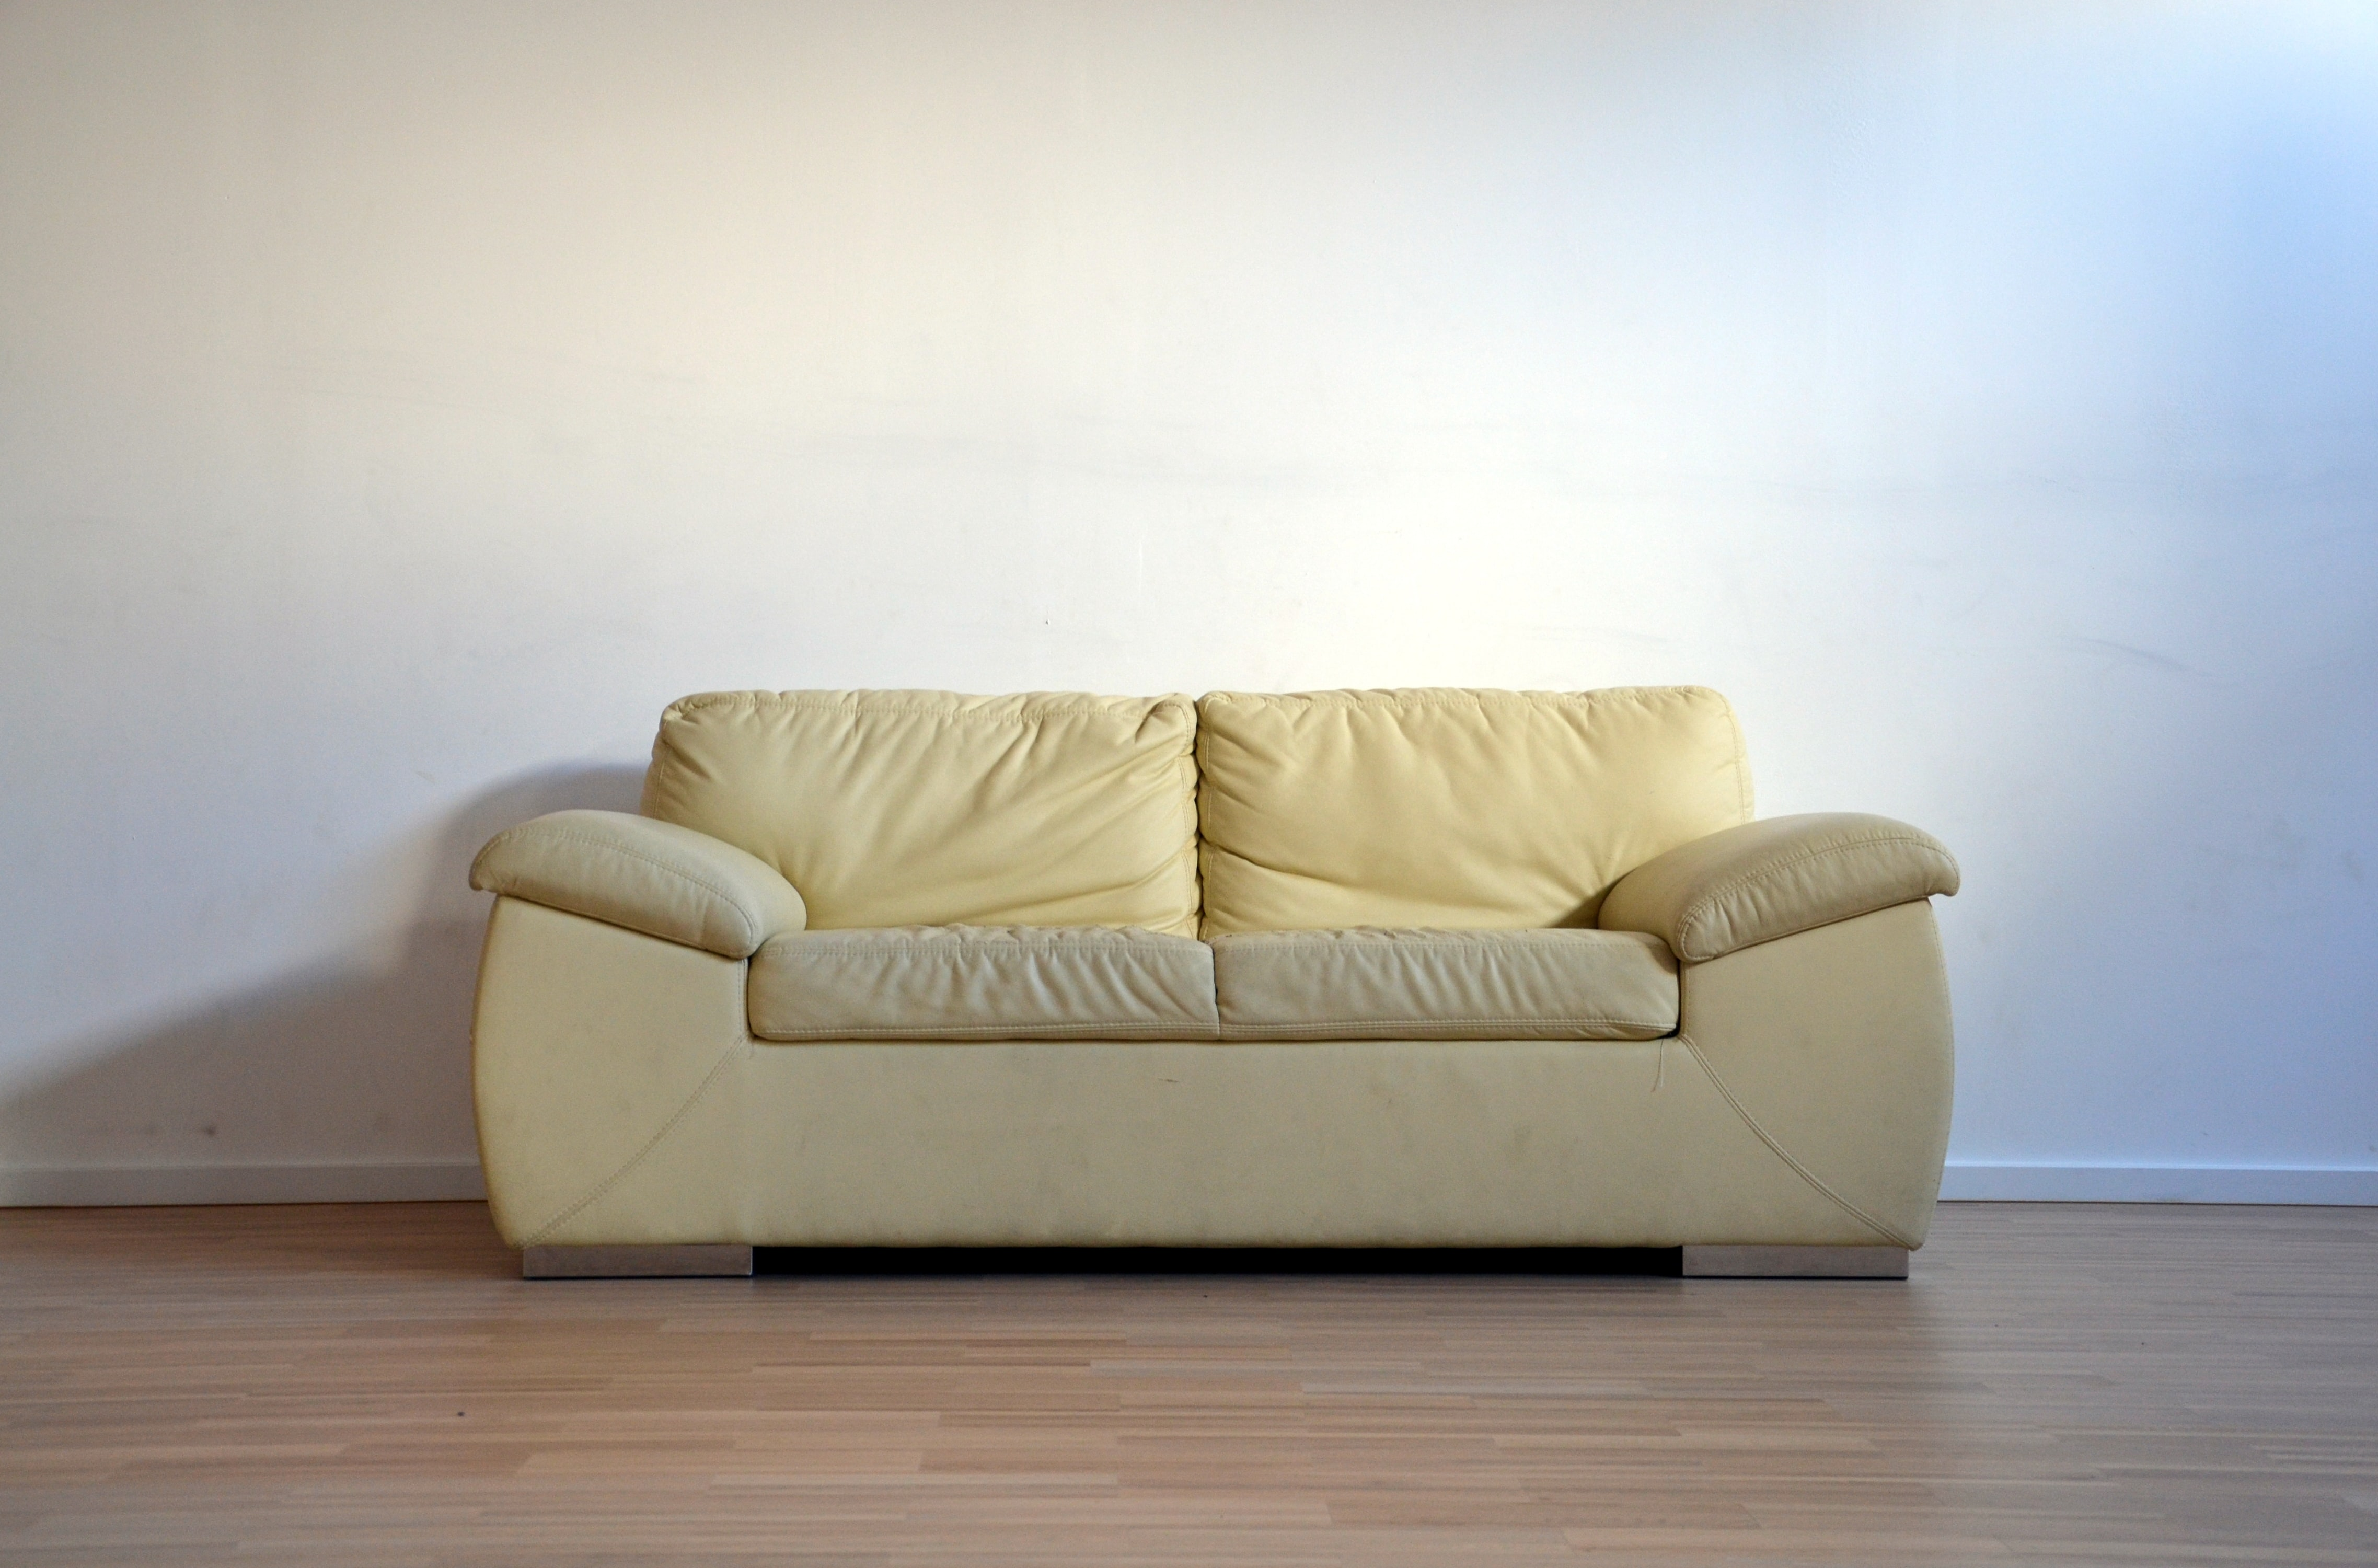 Merveilleux Couch Pictures